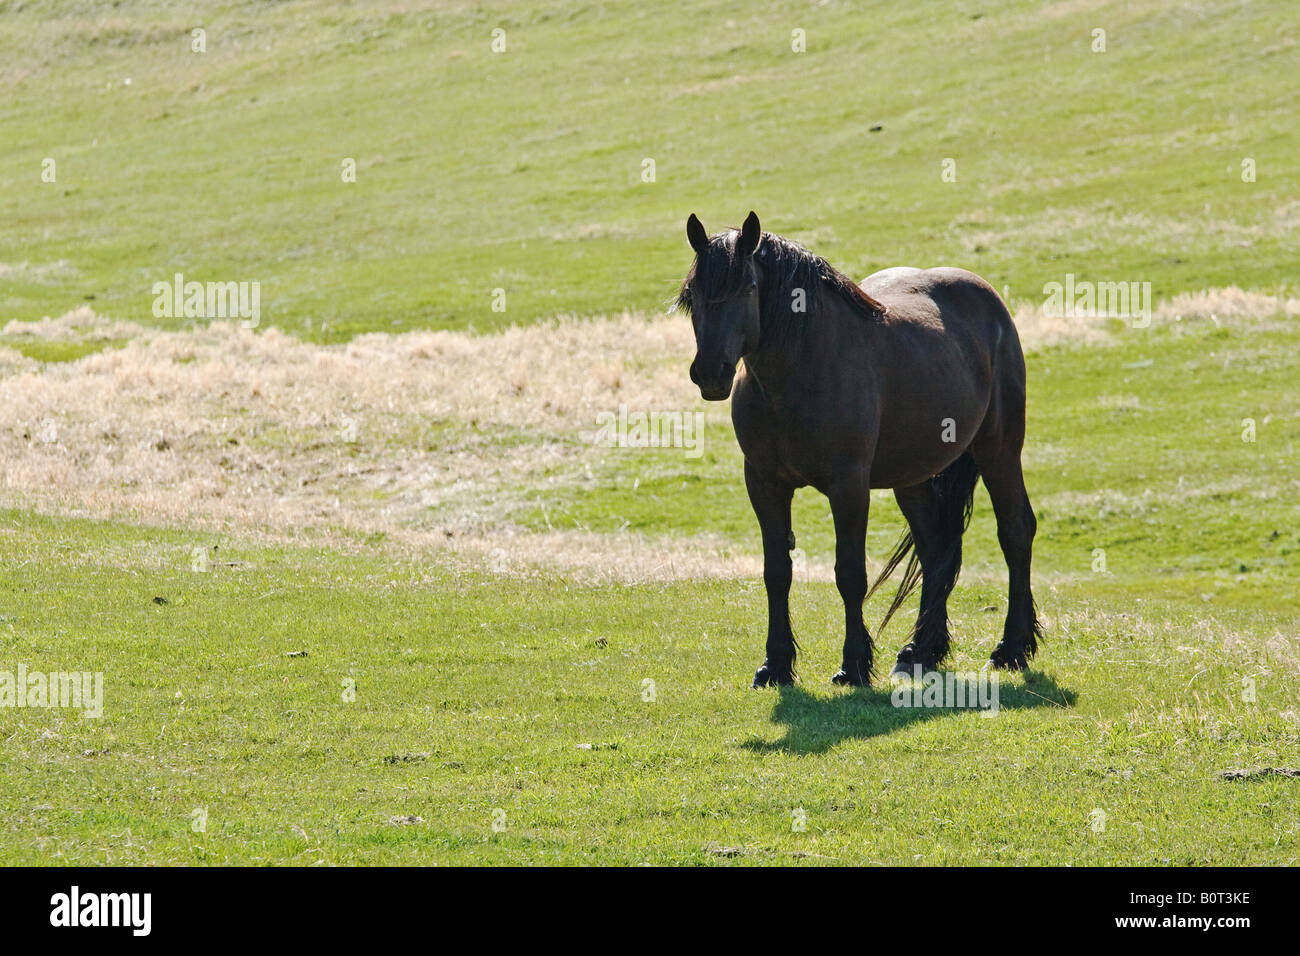 Black Fresian Cross Light Draft Horse Standing In Field Looking At Stock Photo Alamy